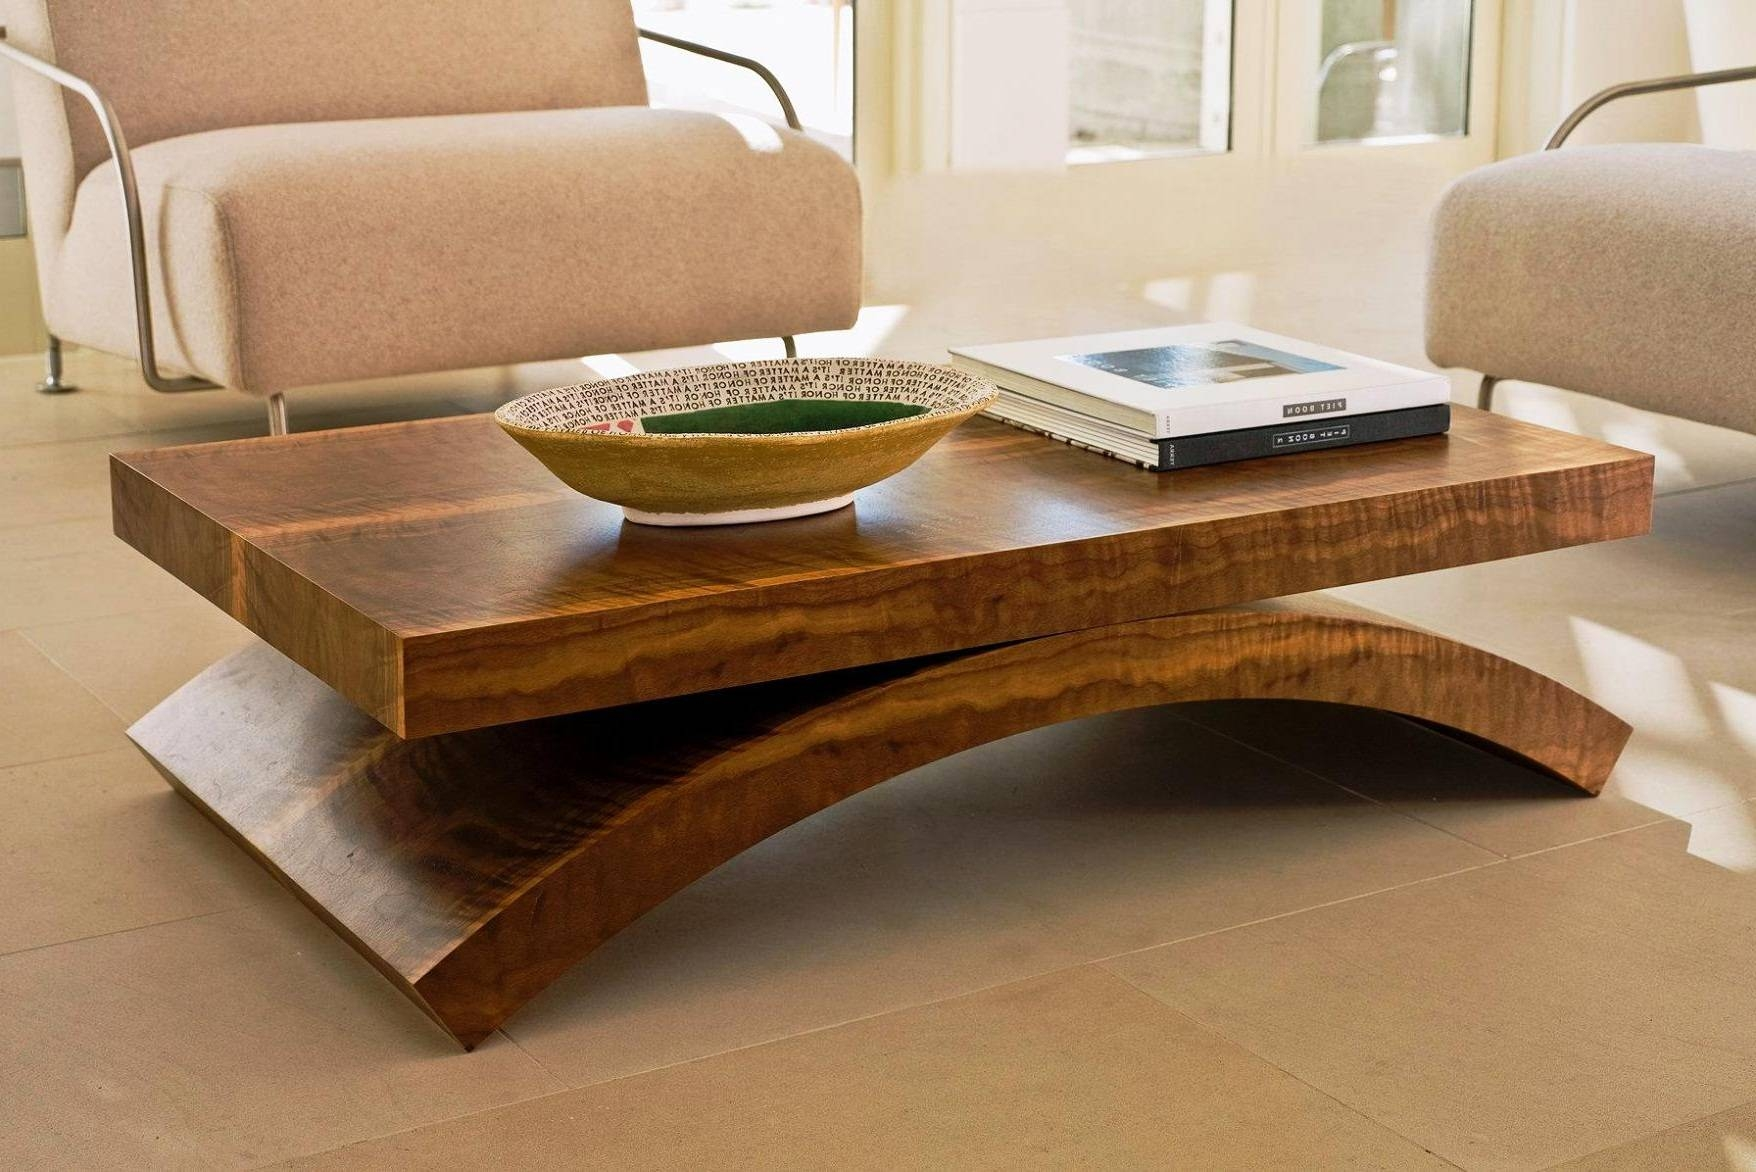 Coffee Tables: Popular Oversized Coffee Tables Designs Large with Large Square Coffee Tables (Image 7 of 30)